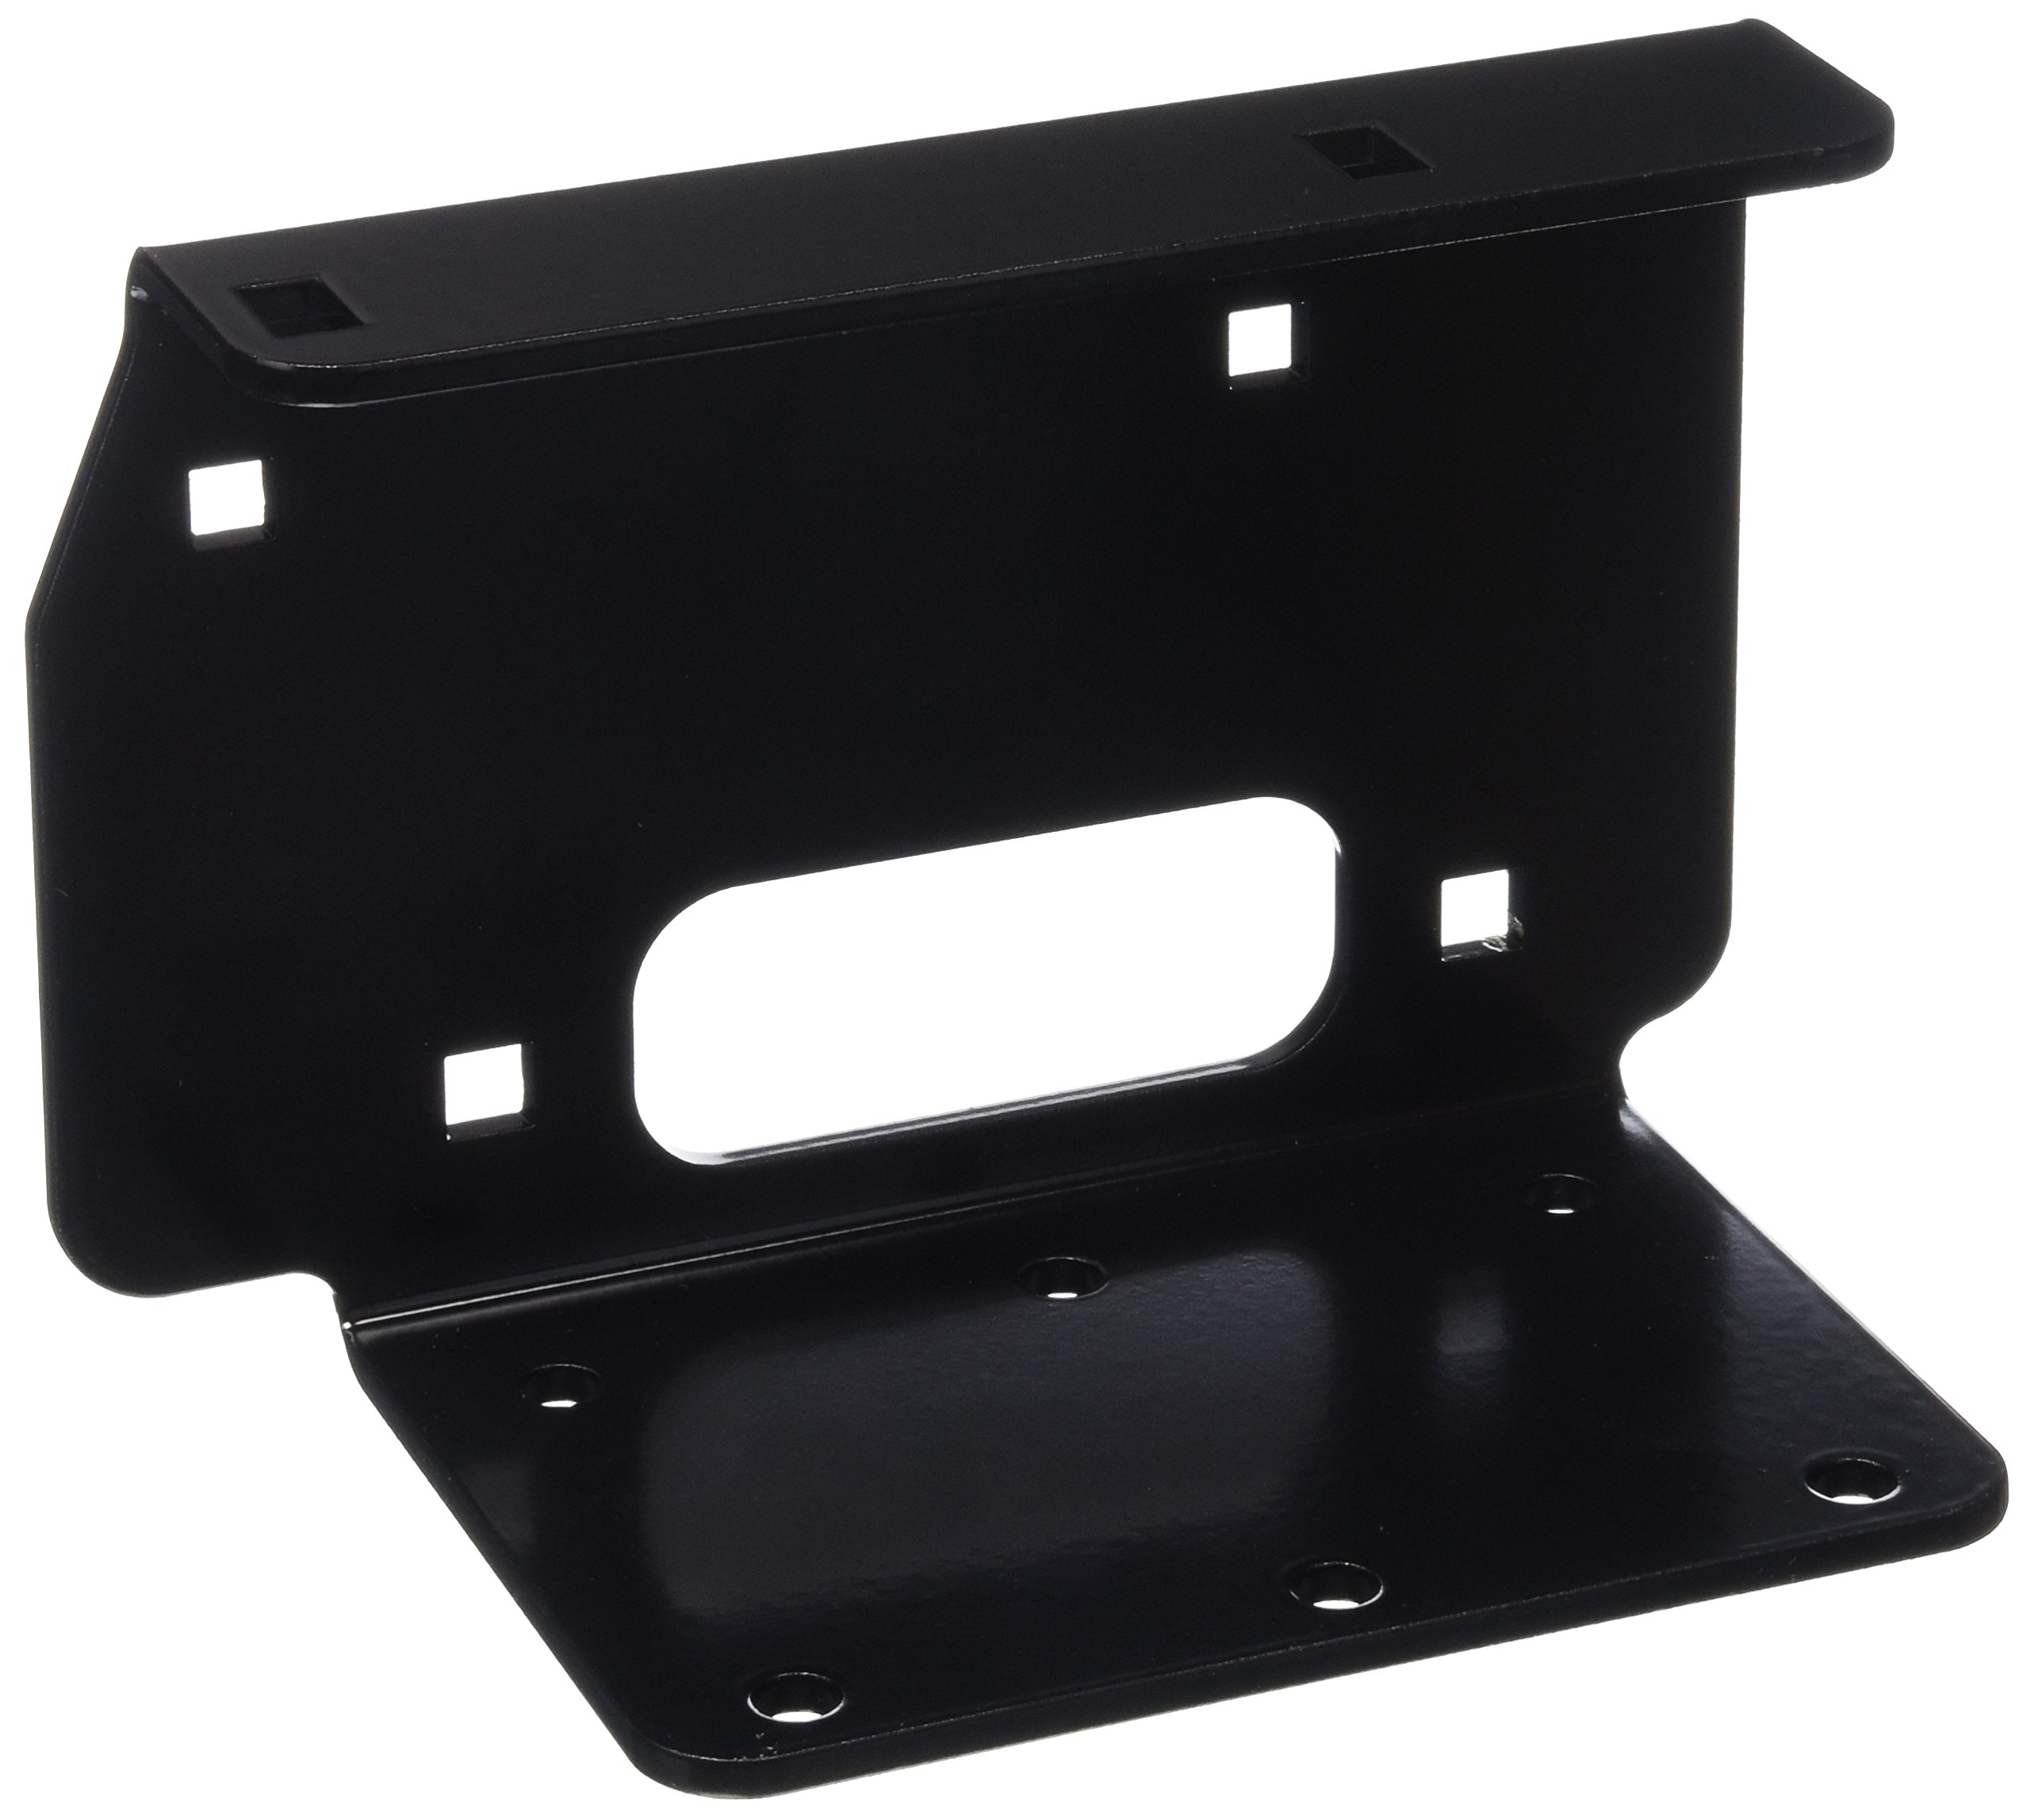 KFI Products 100595 Winch Mount for Kawasaki Prairie 650/700 4x4 by KFI Products